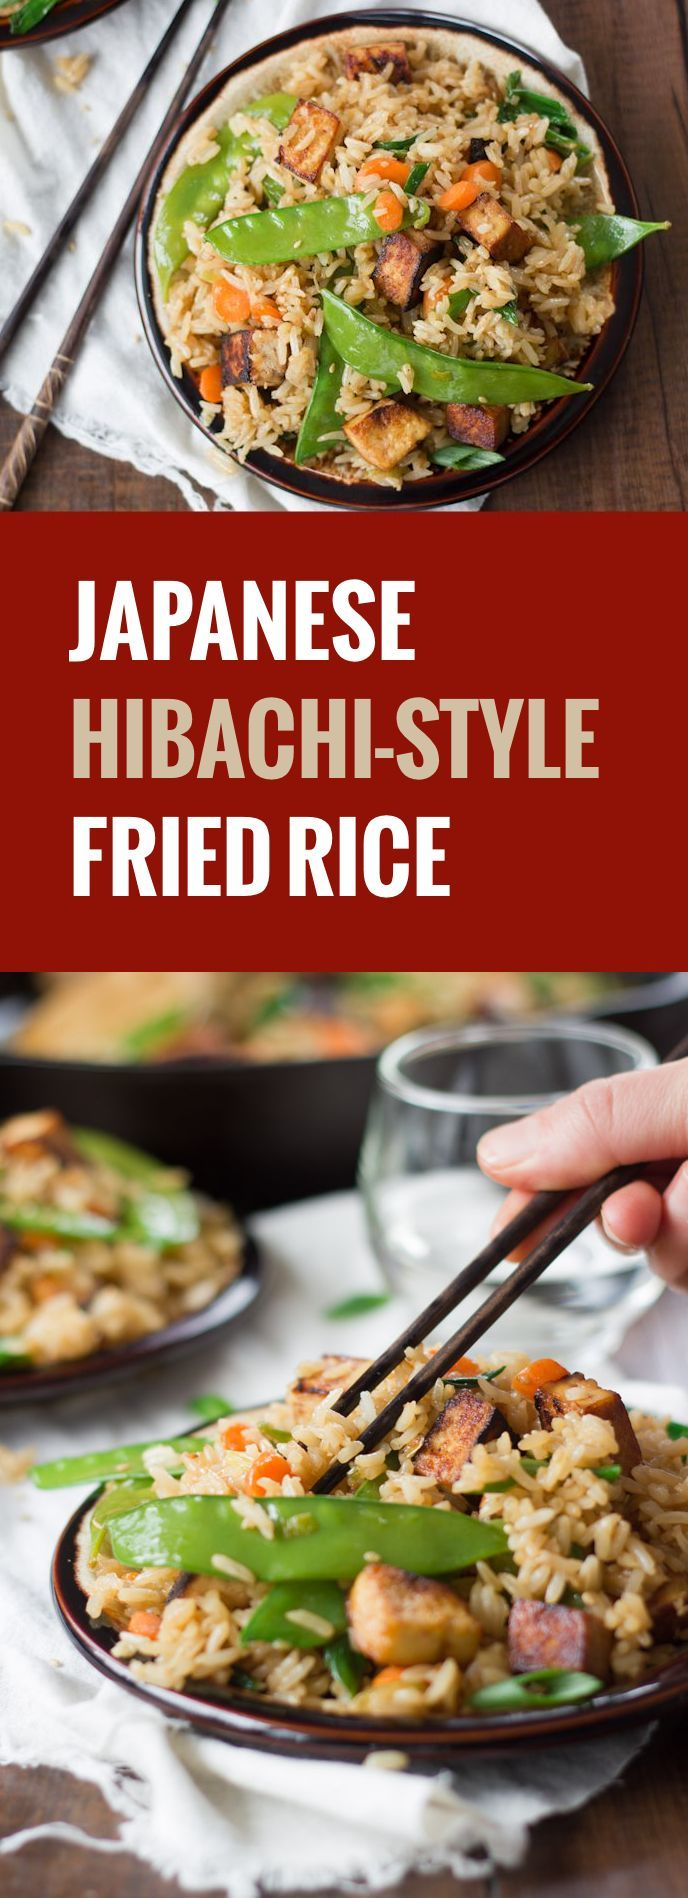 Crispy fried rice and stir-fried veggies are seasoned up with sake-soy sauce and served with crispy tofu bacon to make this Japanese-inspired vegan delight.